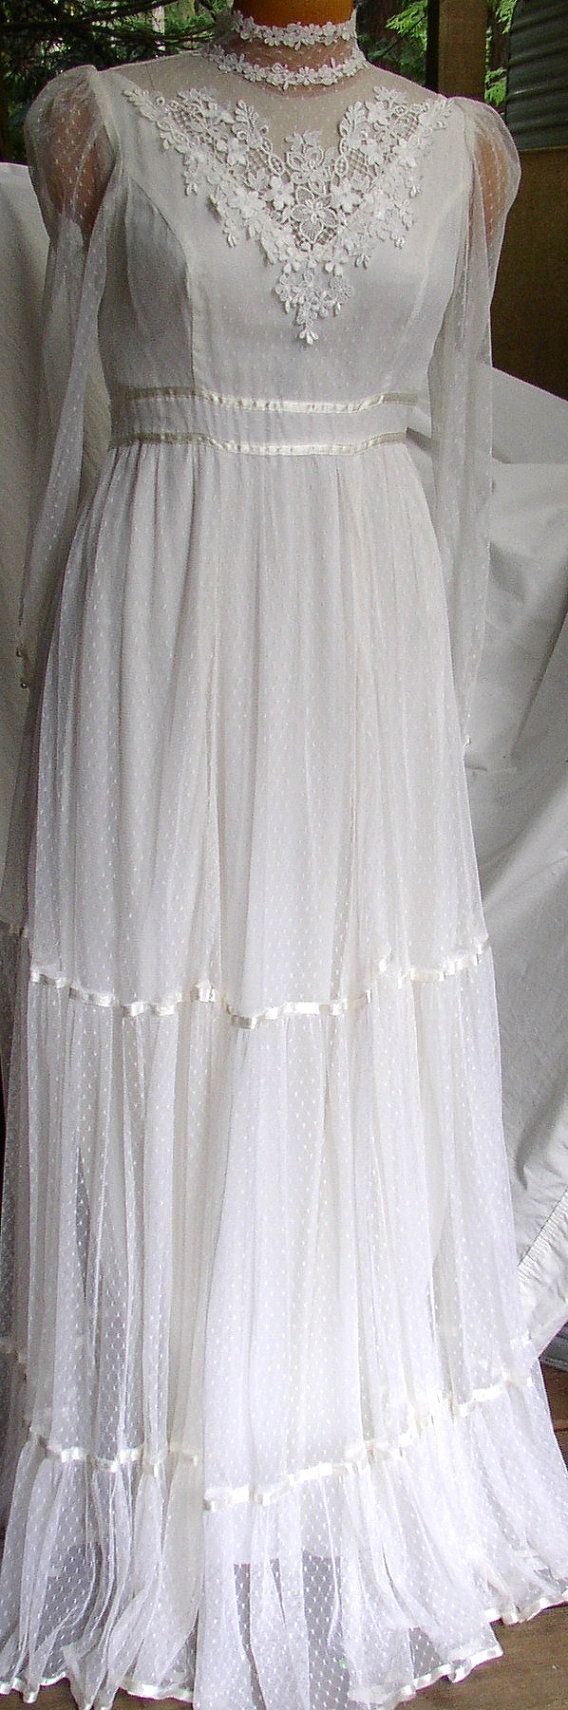 1970s Gunne Sax. I have two vintage Gunne Sax by Jessica McClintoc.